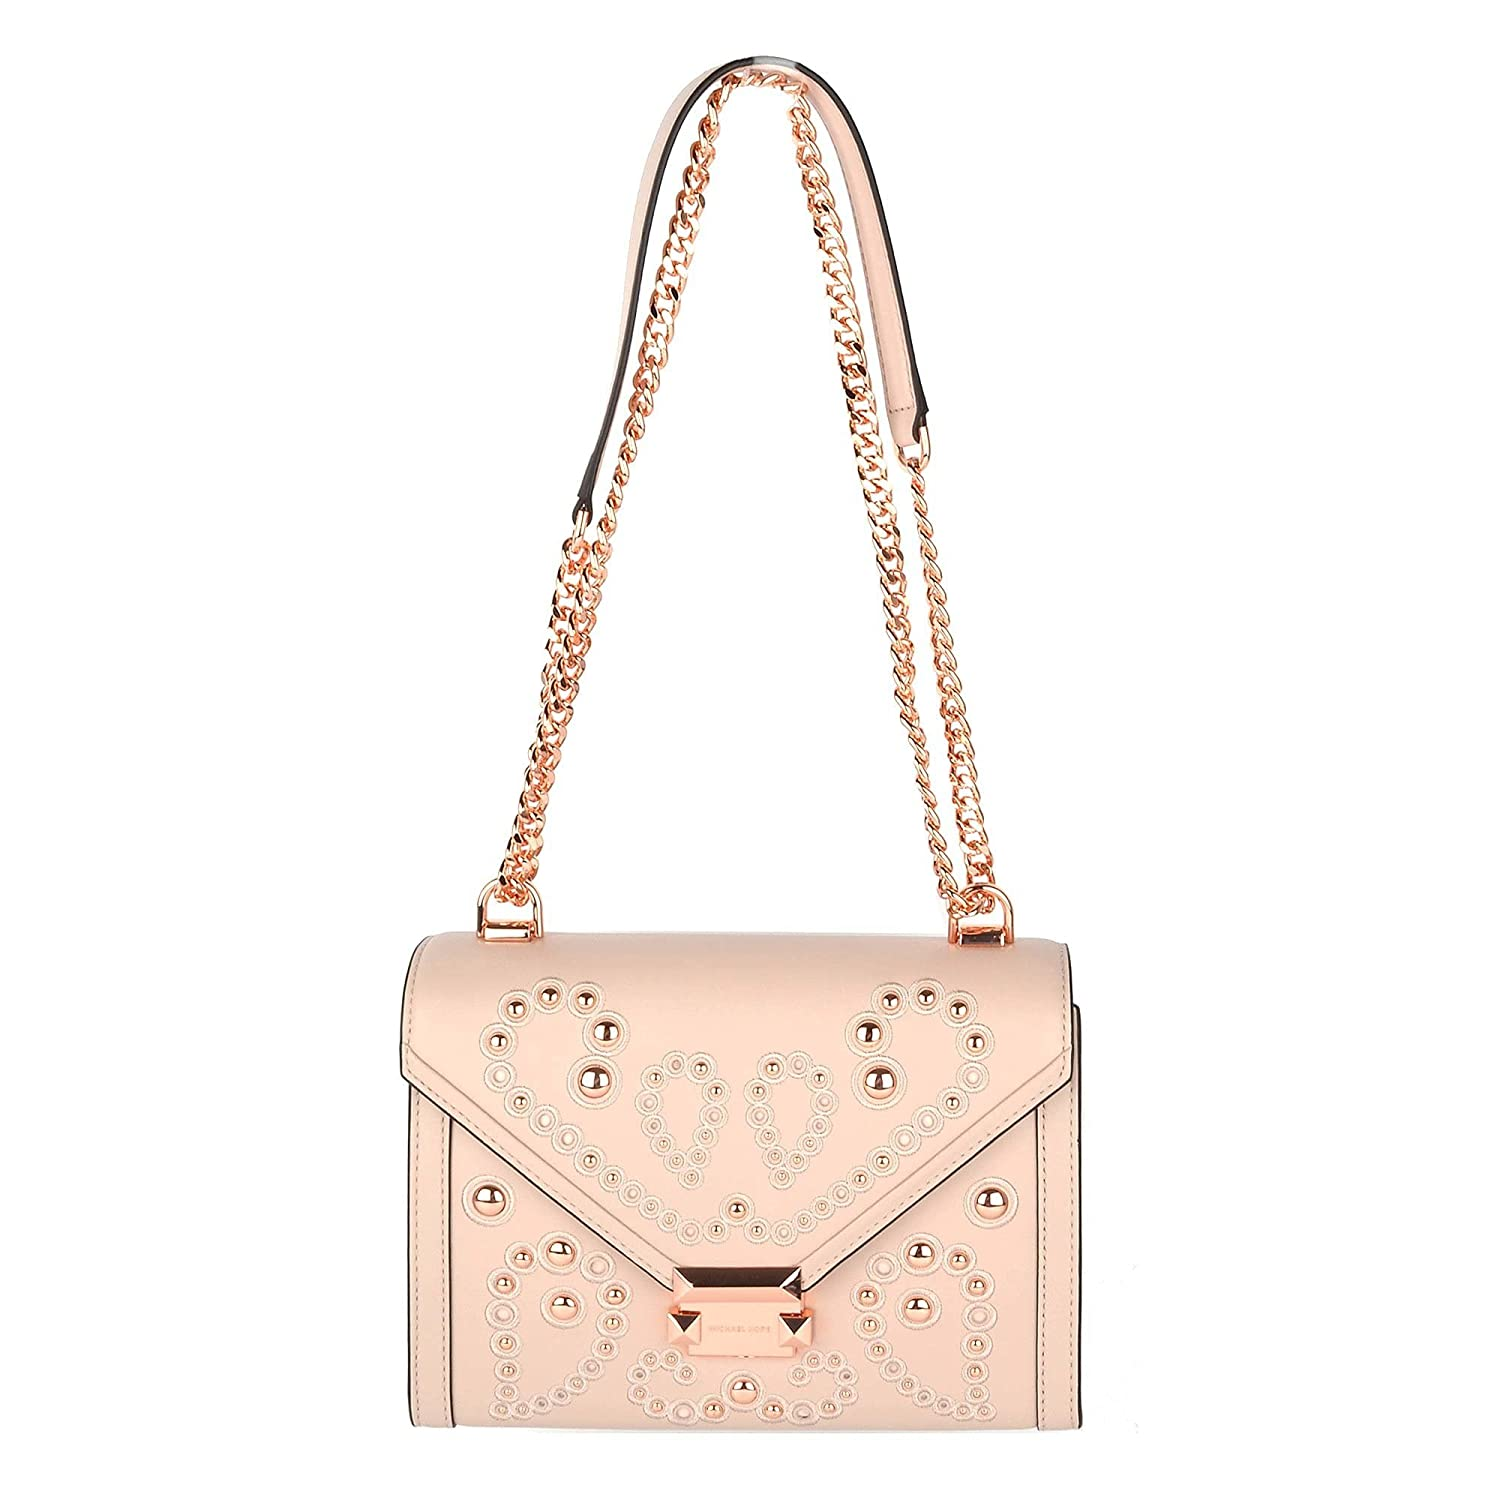 2e0a6cdfb96a07 Michael Kors - Whitney Large Leather Shoulder Bag, Soft Pink, OS: Amazon.co. uk: Shoes & Bags